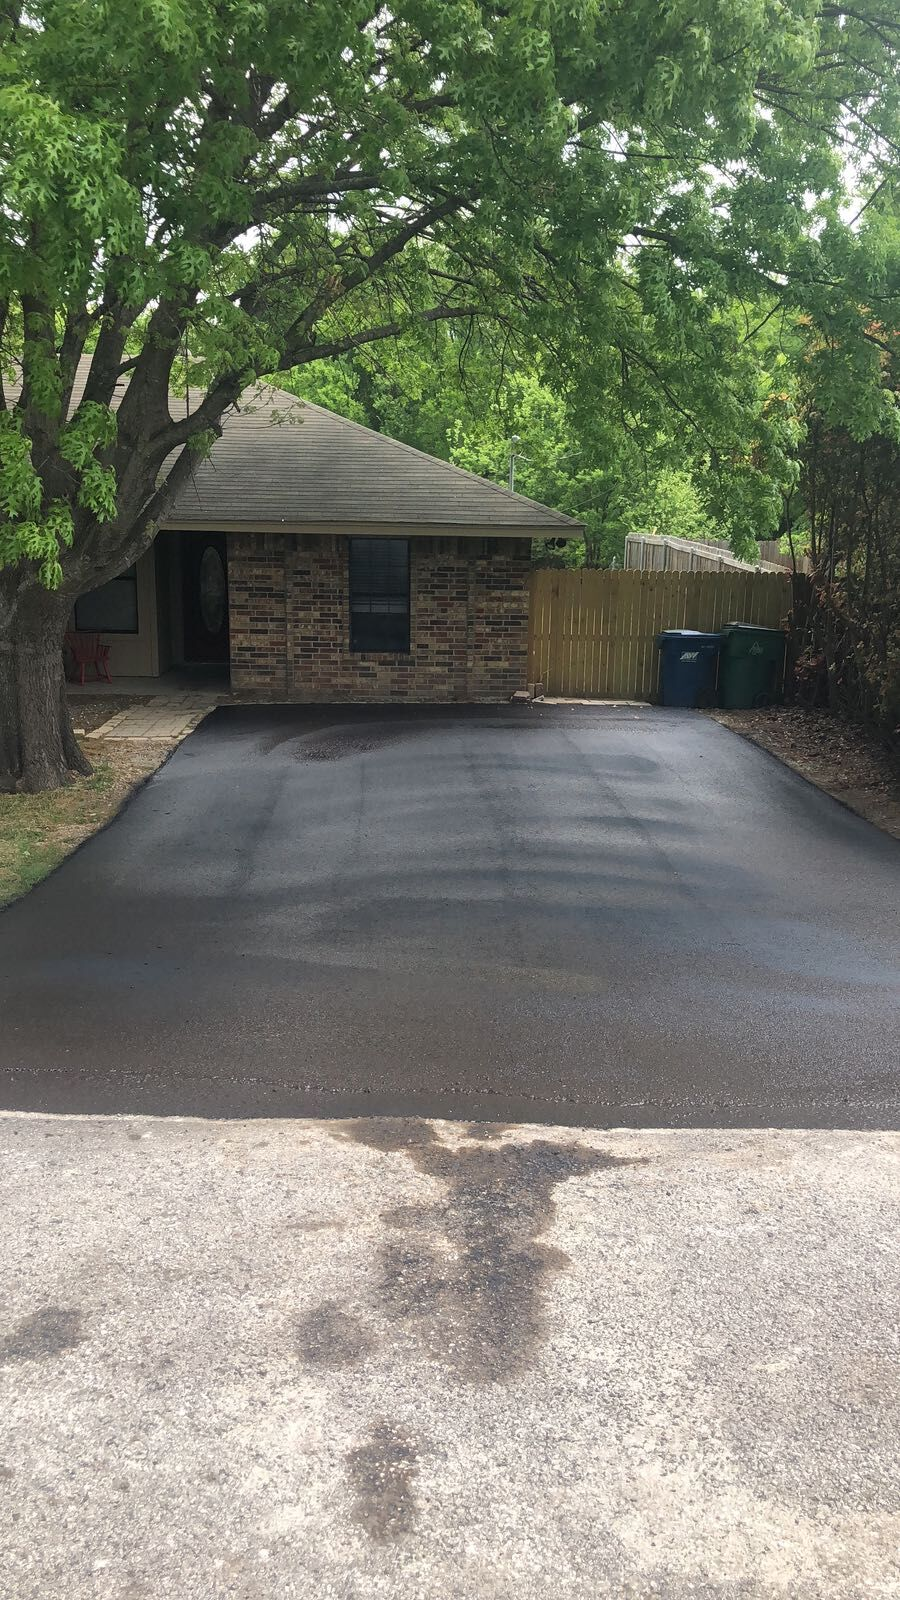 Driveway - After - 1